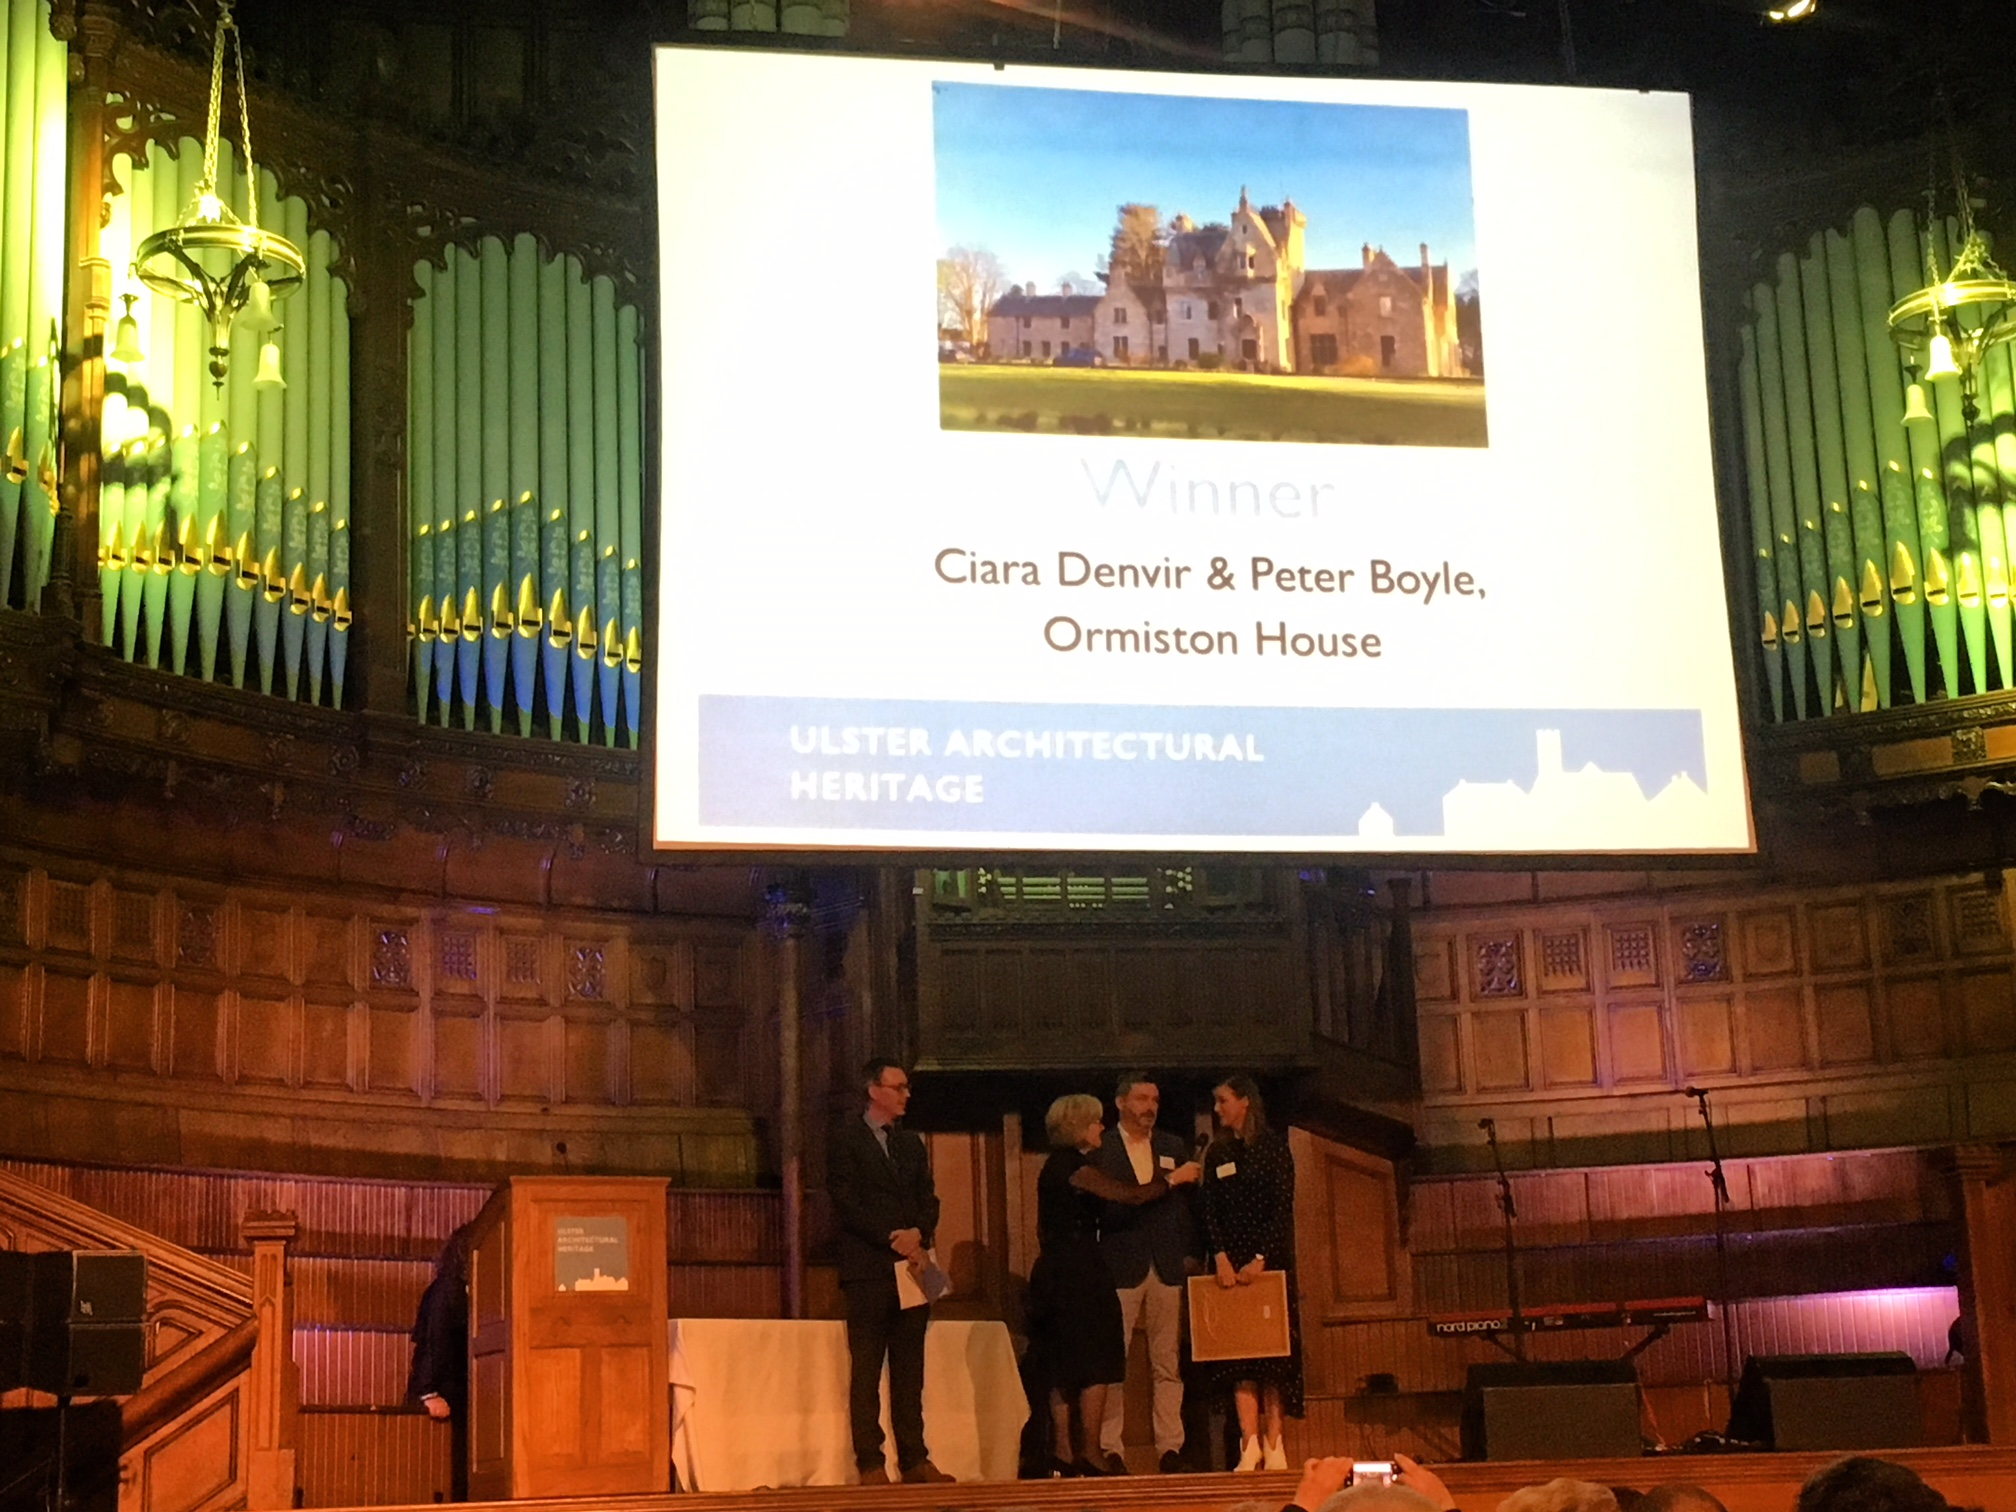 Picking up the award in the stunning Guildhall Derry